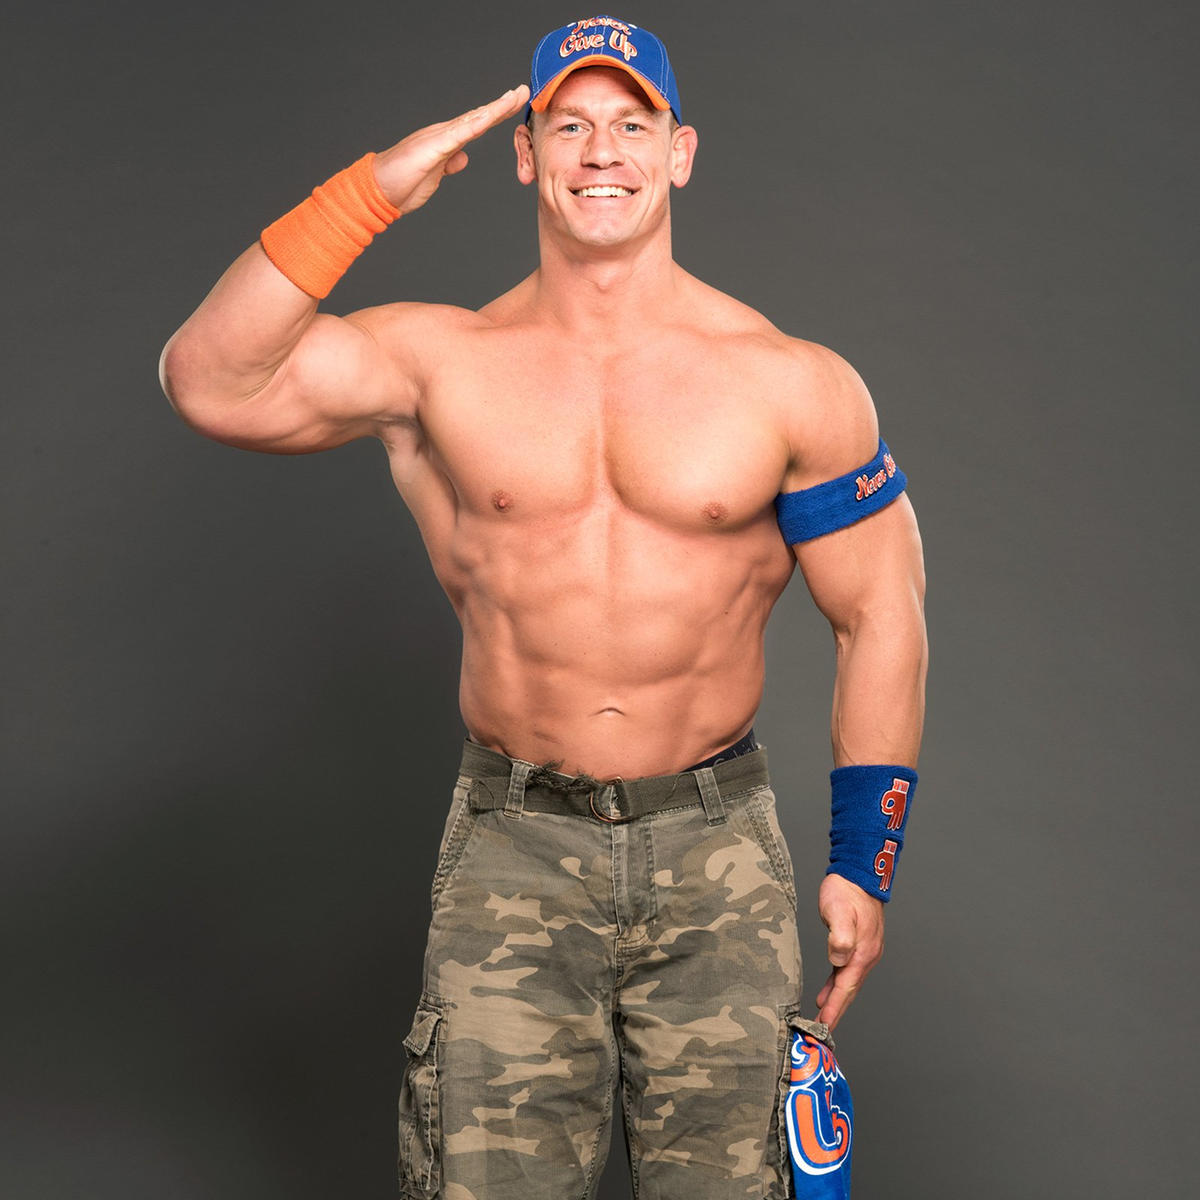 John Cena recently celebrated his 40th birthday by deadlifting 602 pounds.